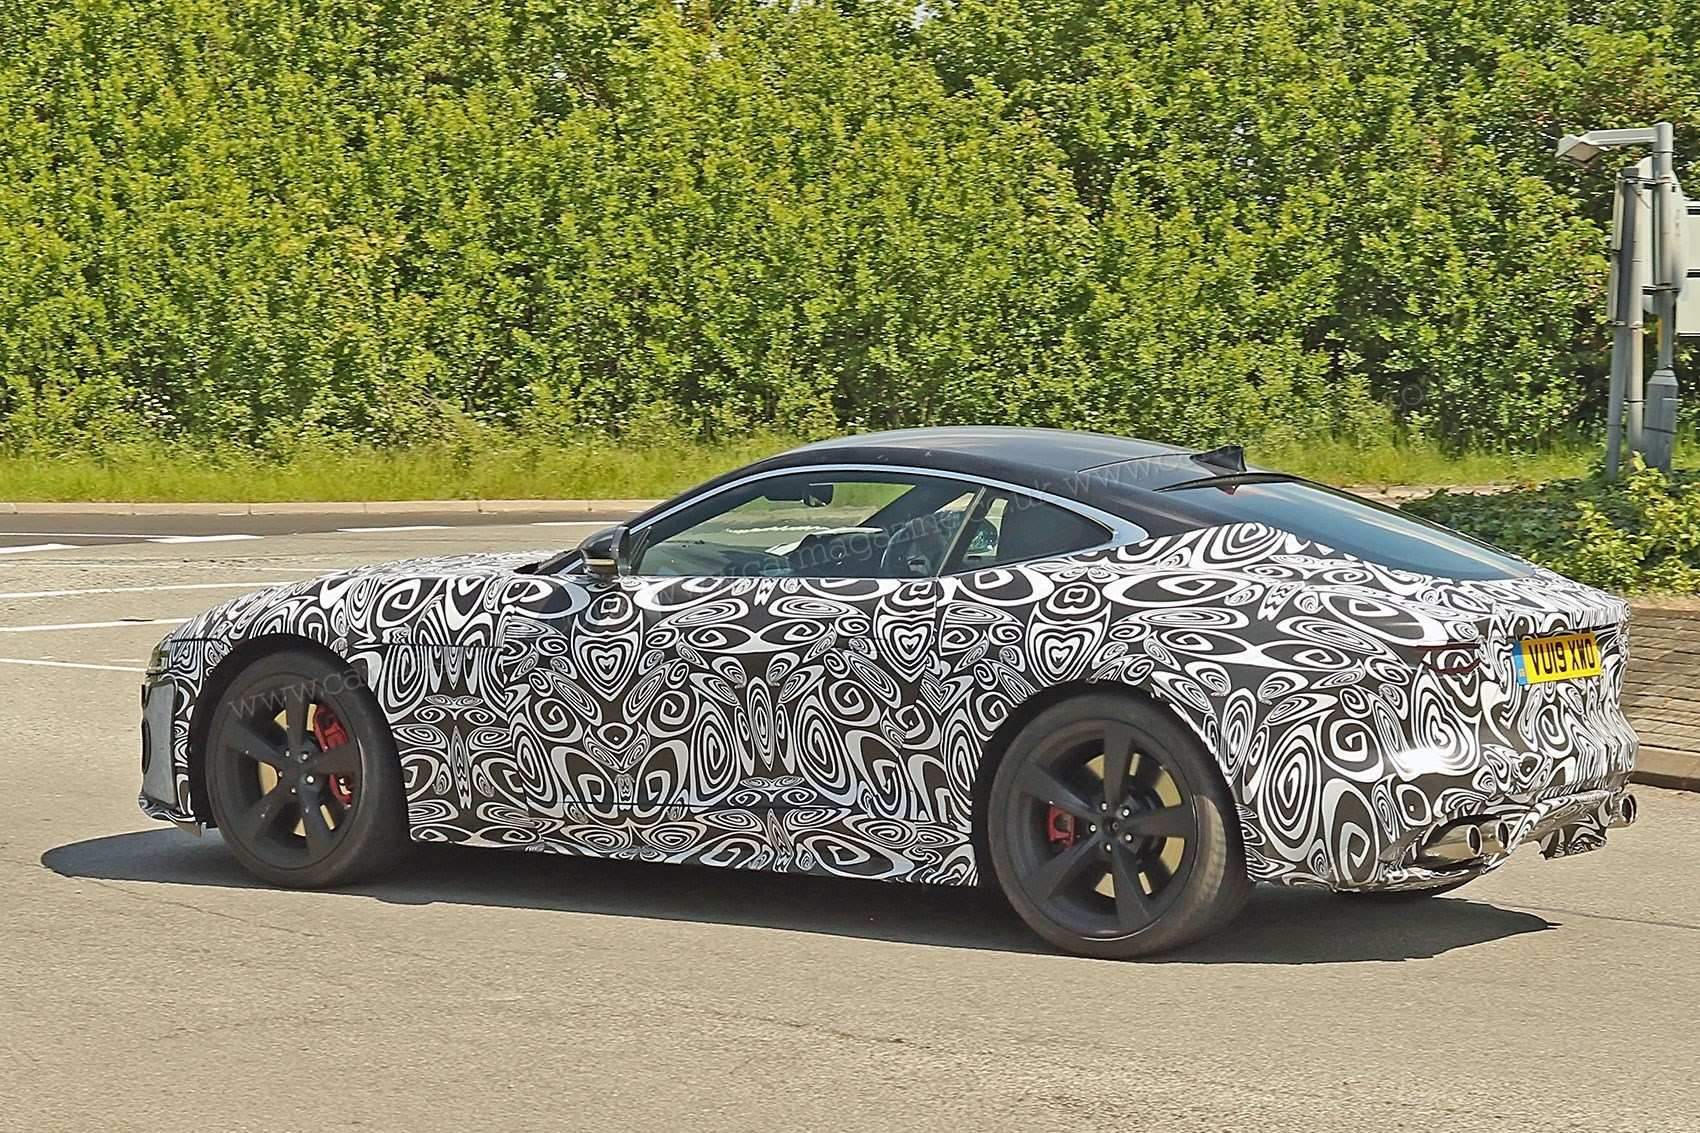 43 All New 2020 Jaguar F Type Msrp Concept